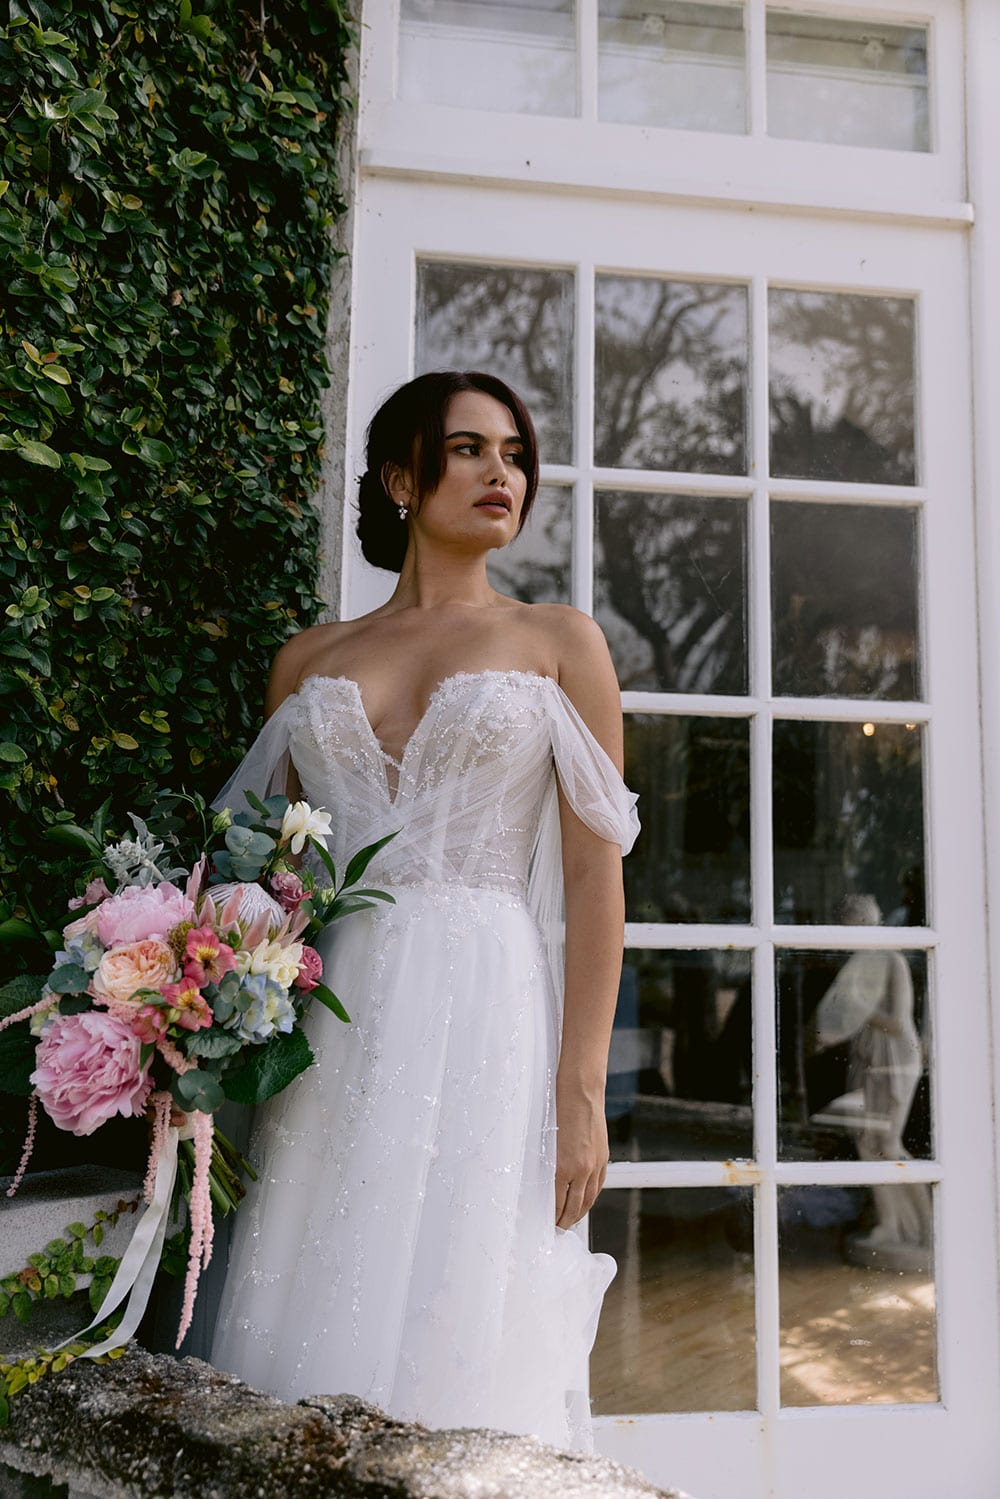 Evie Wedding gown from Vinka Design - Dreamy semi-sheer wedding dress with lace embroidery and beading. The bodice is structured, with hand-appliqued lace and draped with tulle to integrate modern elements with classic design. Model wearing gown holding bouquet.